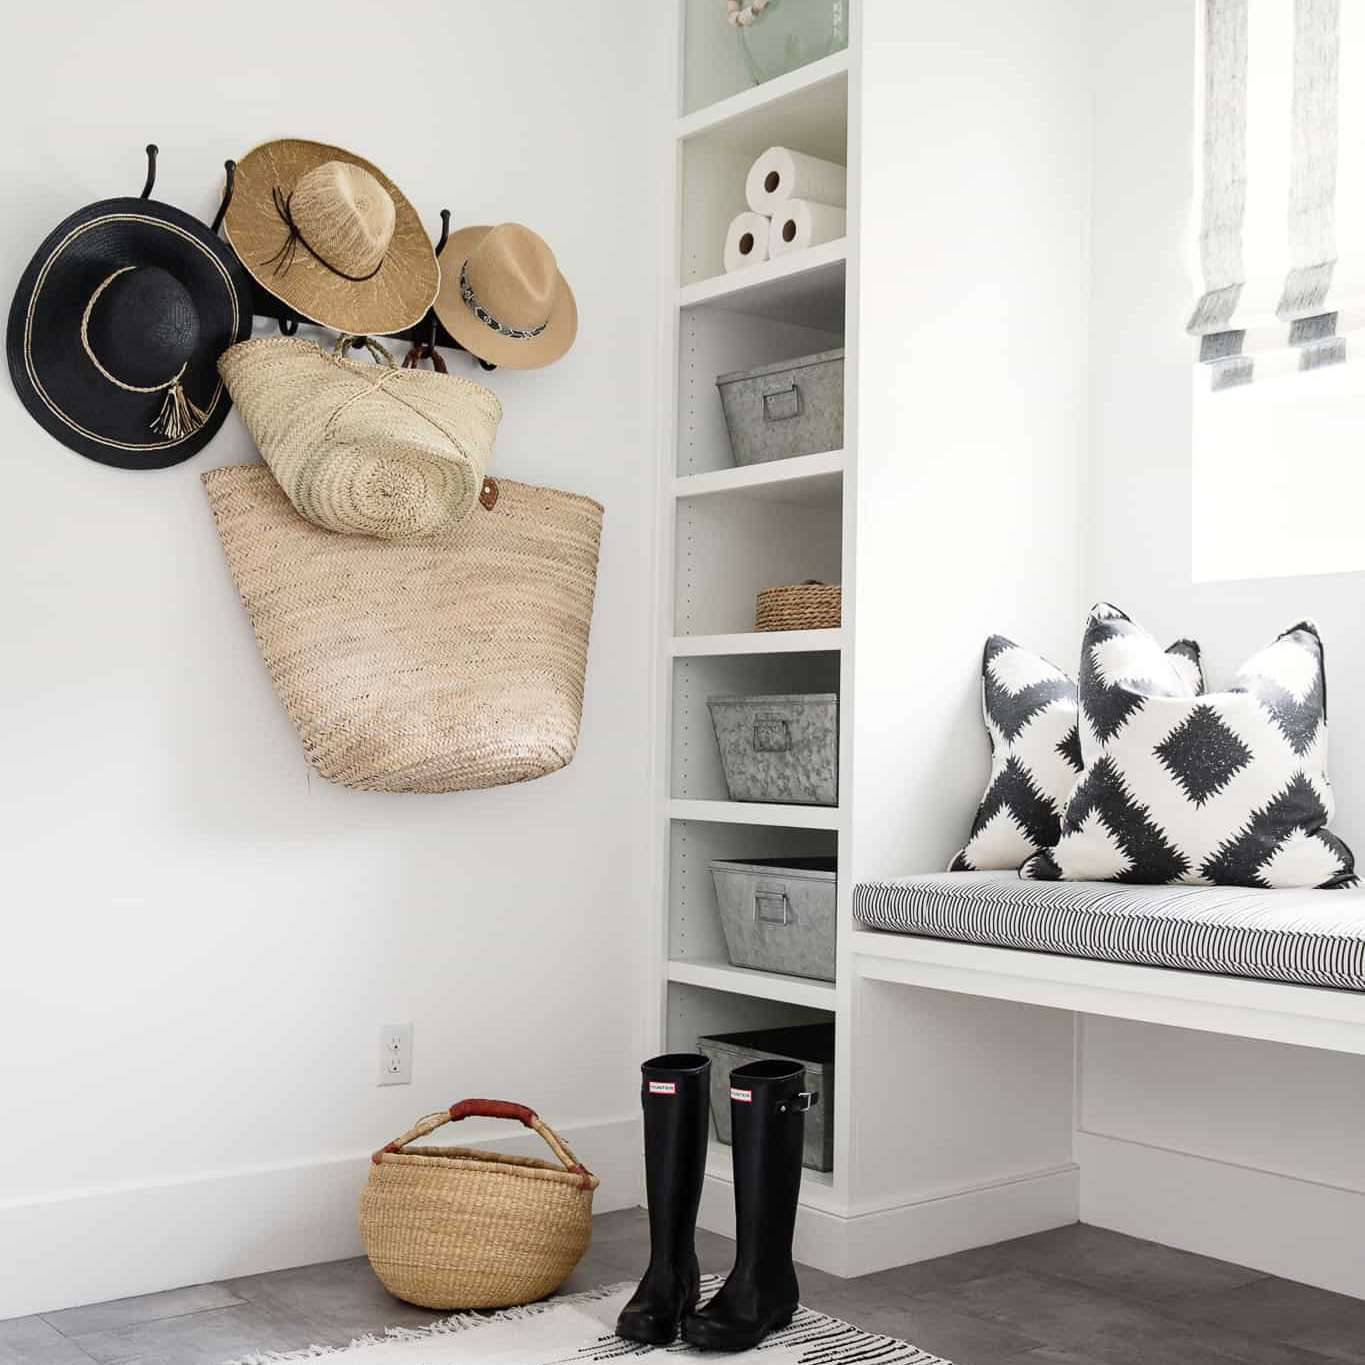 An all-white mudroom with a bench, several shelves, and some hooks